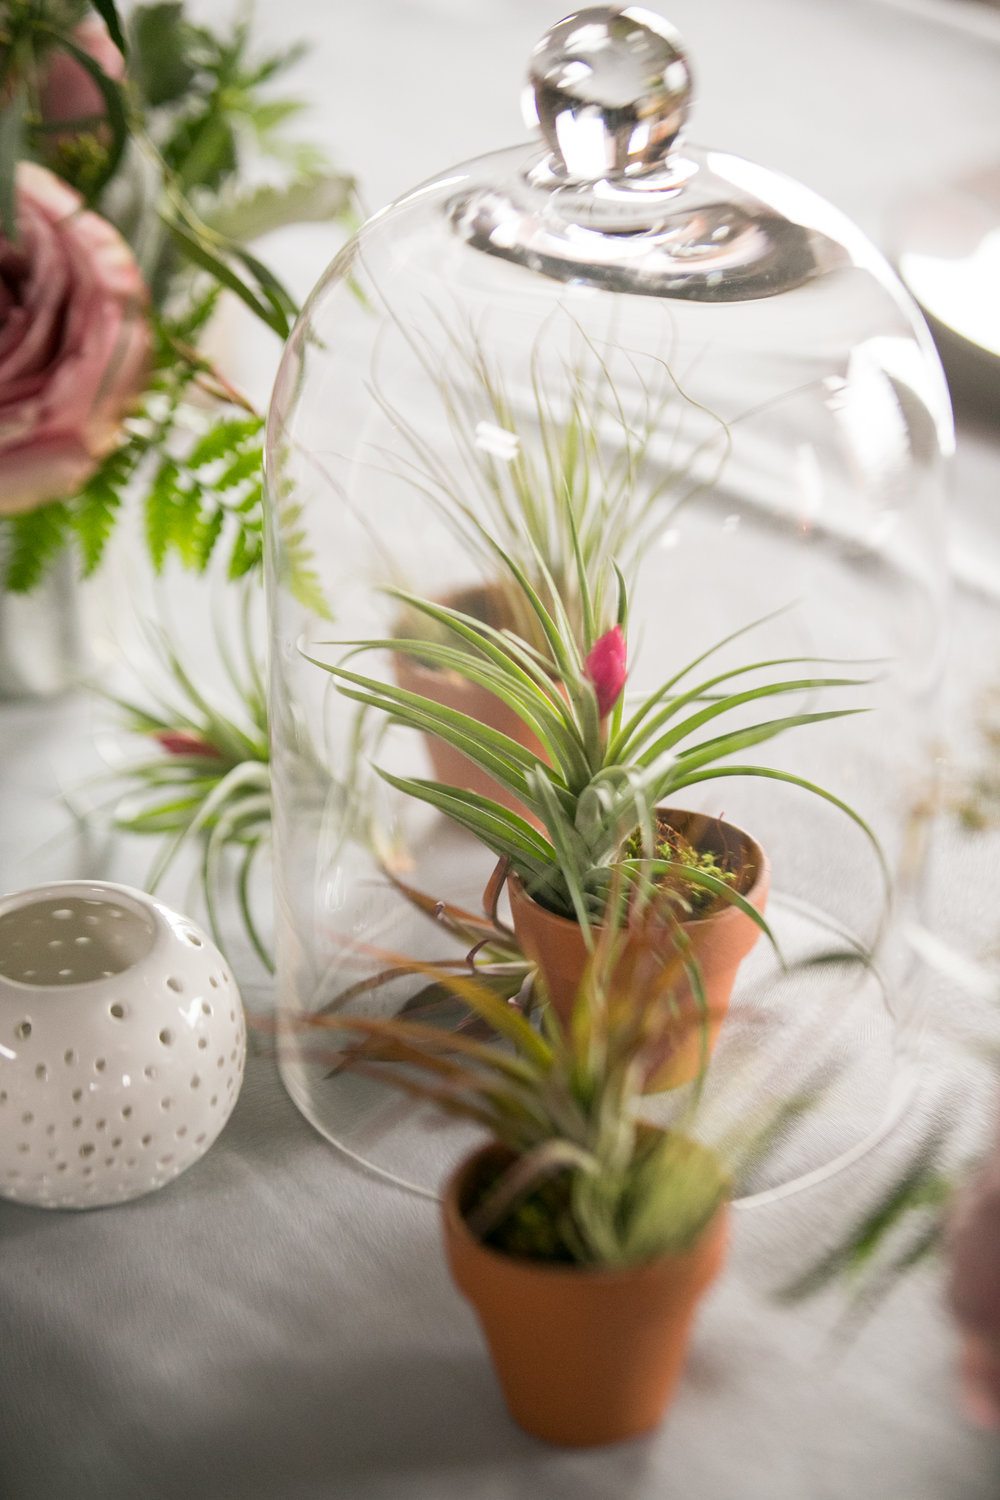 Tilandsia and cloche centerpiece